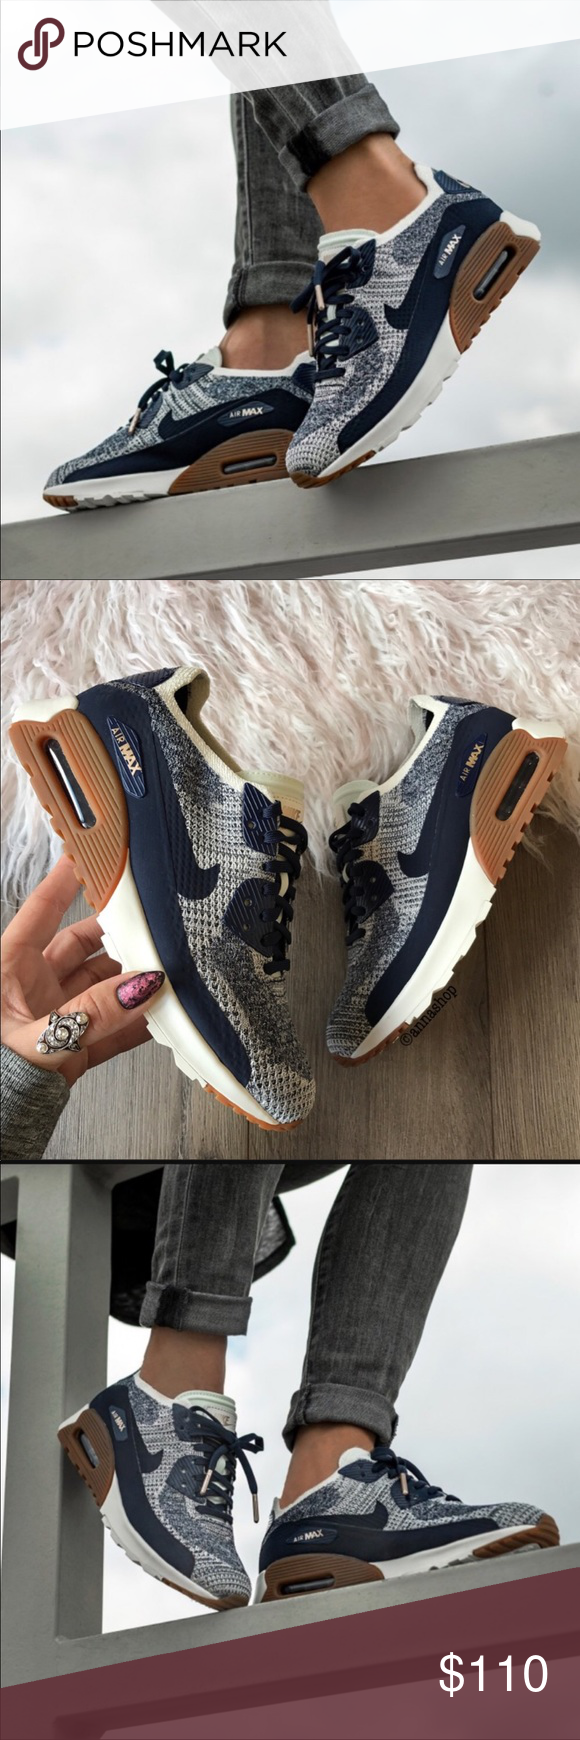 free shipping f451a 72e2b NWT Nike air max Ultra Flyknit blue rose gold Brand new no box, price is  firm!It doesn t get much better than the classic Nike Air Max 90, or does  it